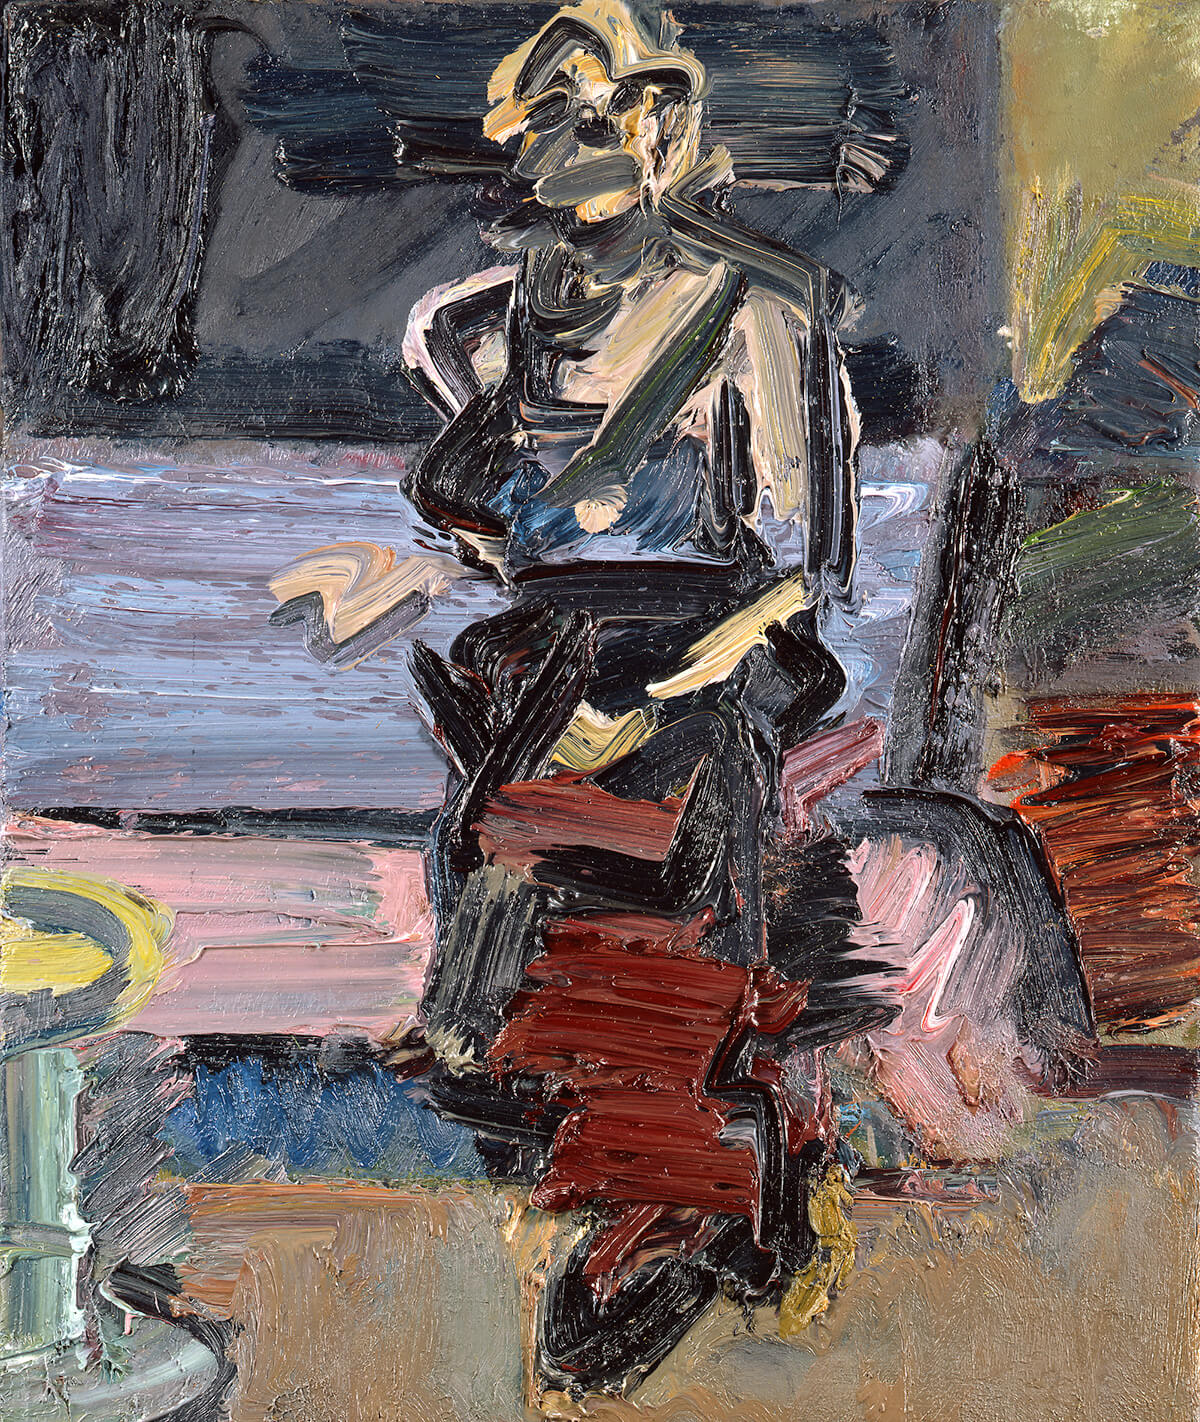 Frank Auerbach, <em>J.Y.M. Seated in the Studio</em>, 1987-8. Oil on canvas, 21½ x 18 in. (54.6 x 45.7 cm). Private collection. © Frank Auerbach, courtesy Marlborough Fine Art.